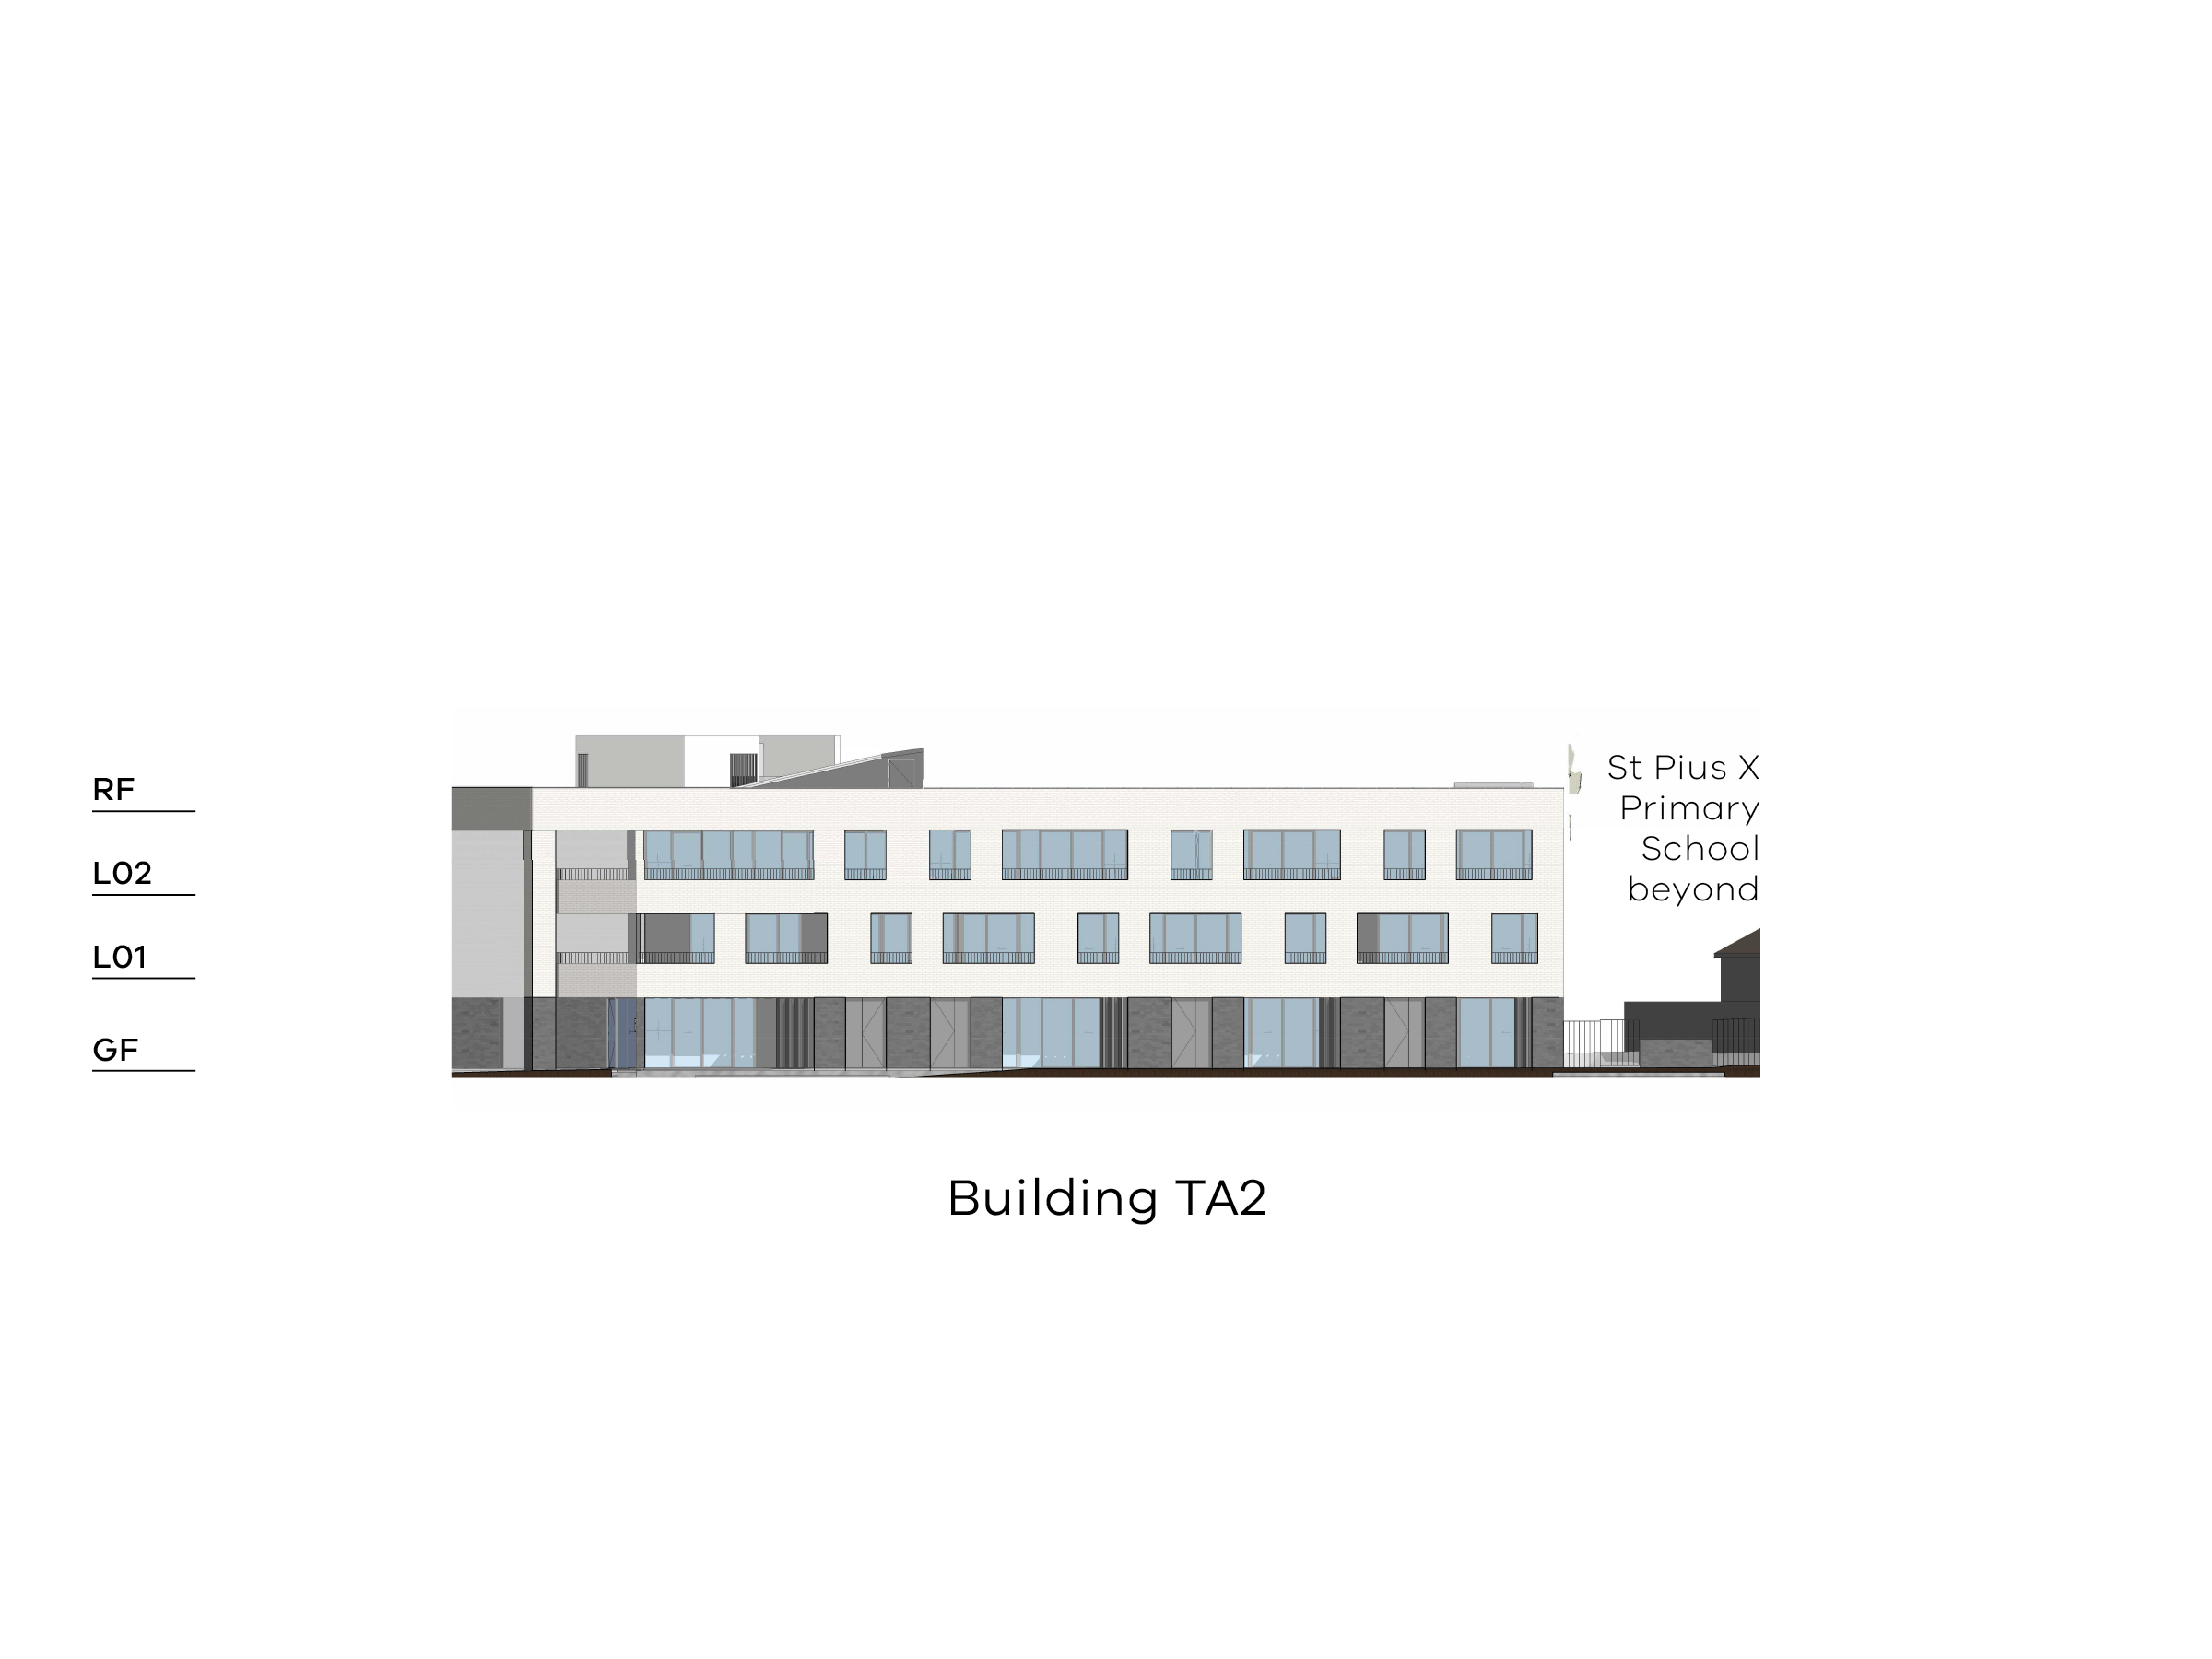 Diagram showing the height of building TA2 as seen from the on-site playground looking towards Altona Street. Building TA2 has a ground floor, level 1-2 and a flat roof.